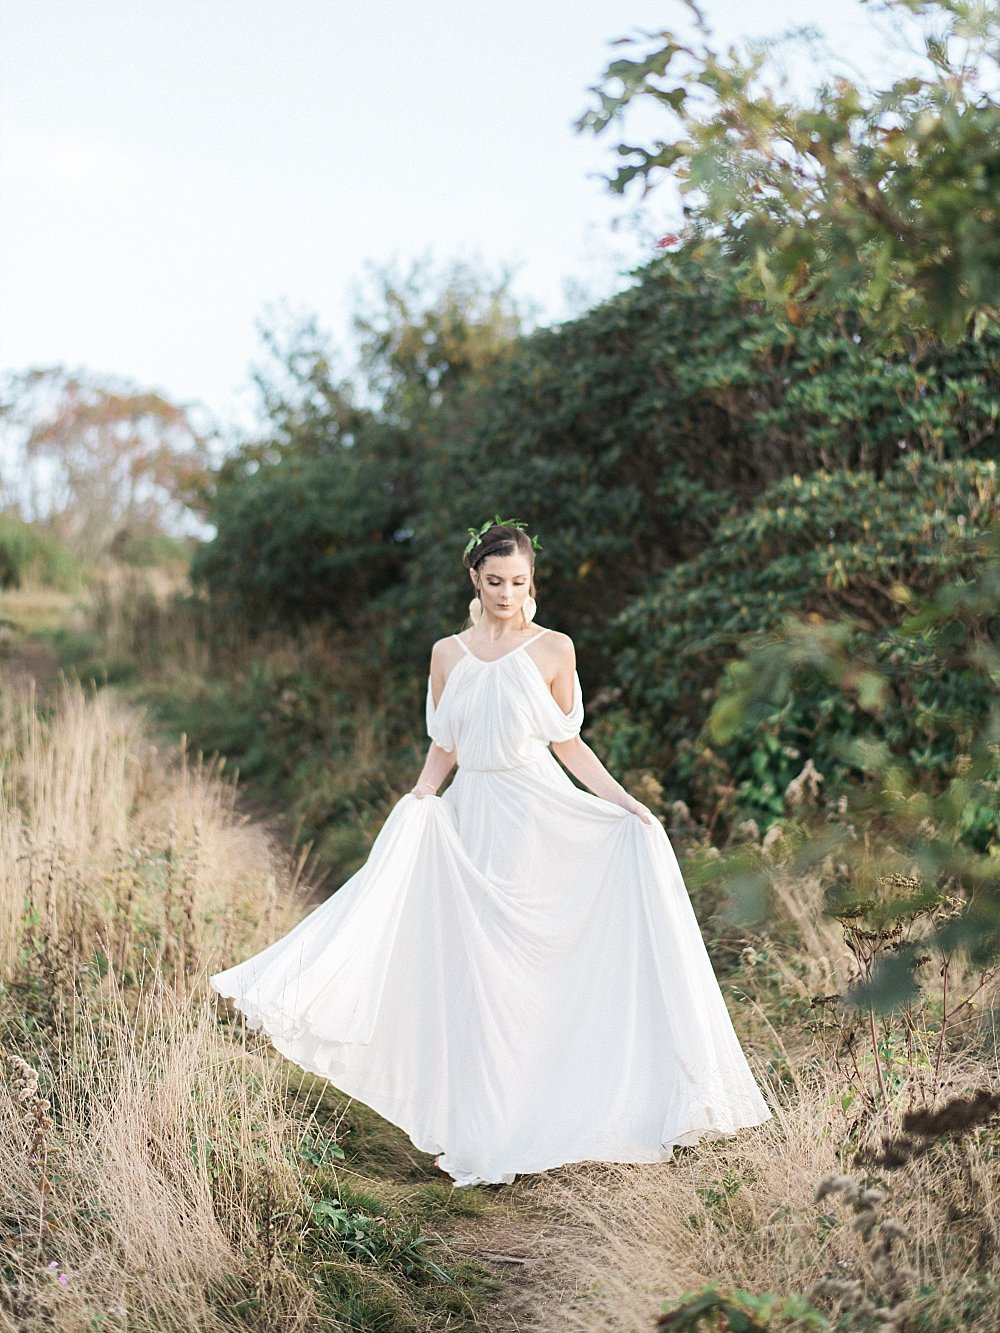 grecian goddess bridal-craggy mountains-asheville-black moutain | Asheville Wedding Photographer